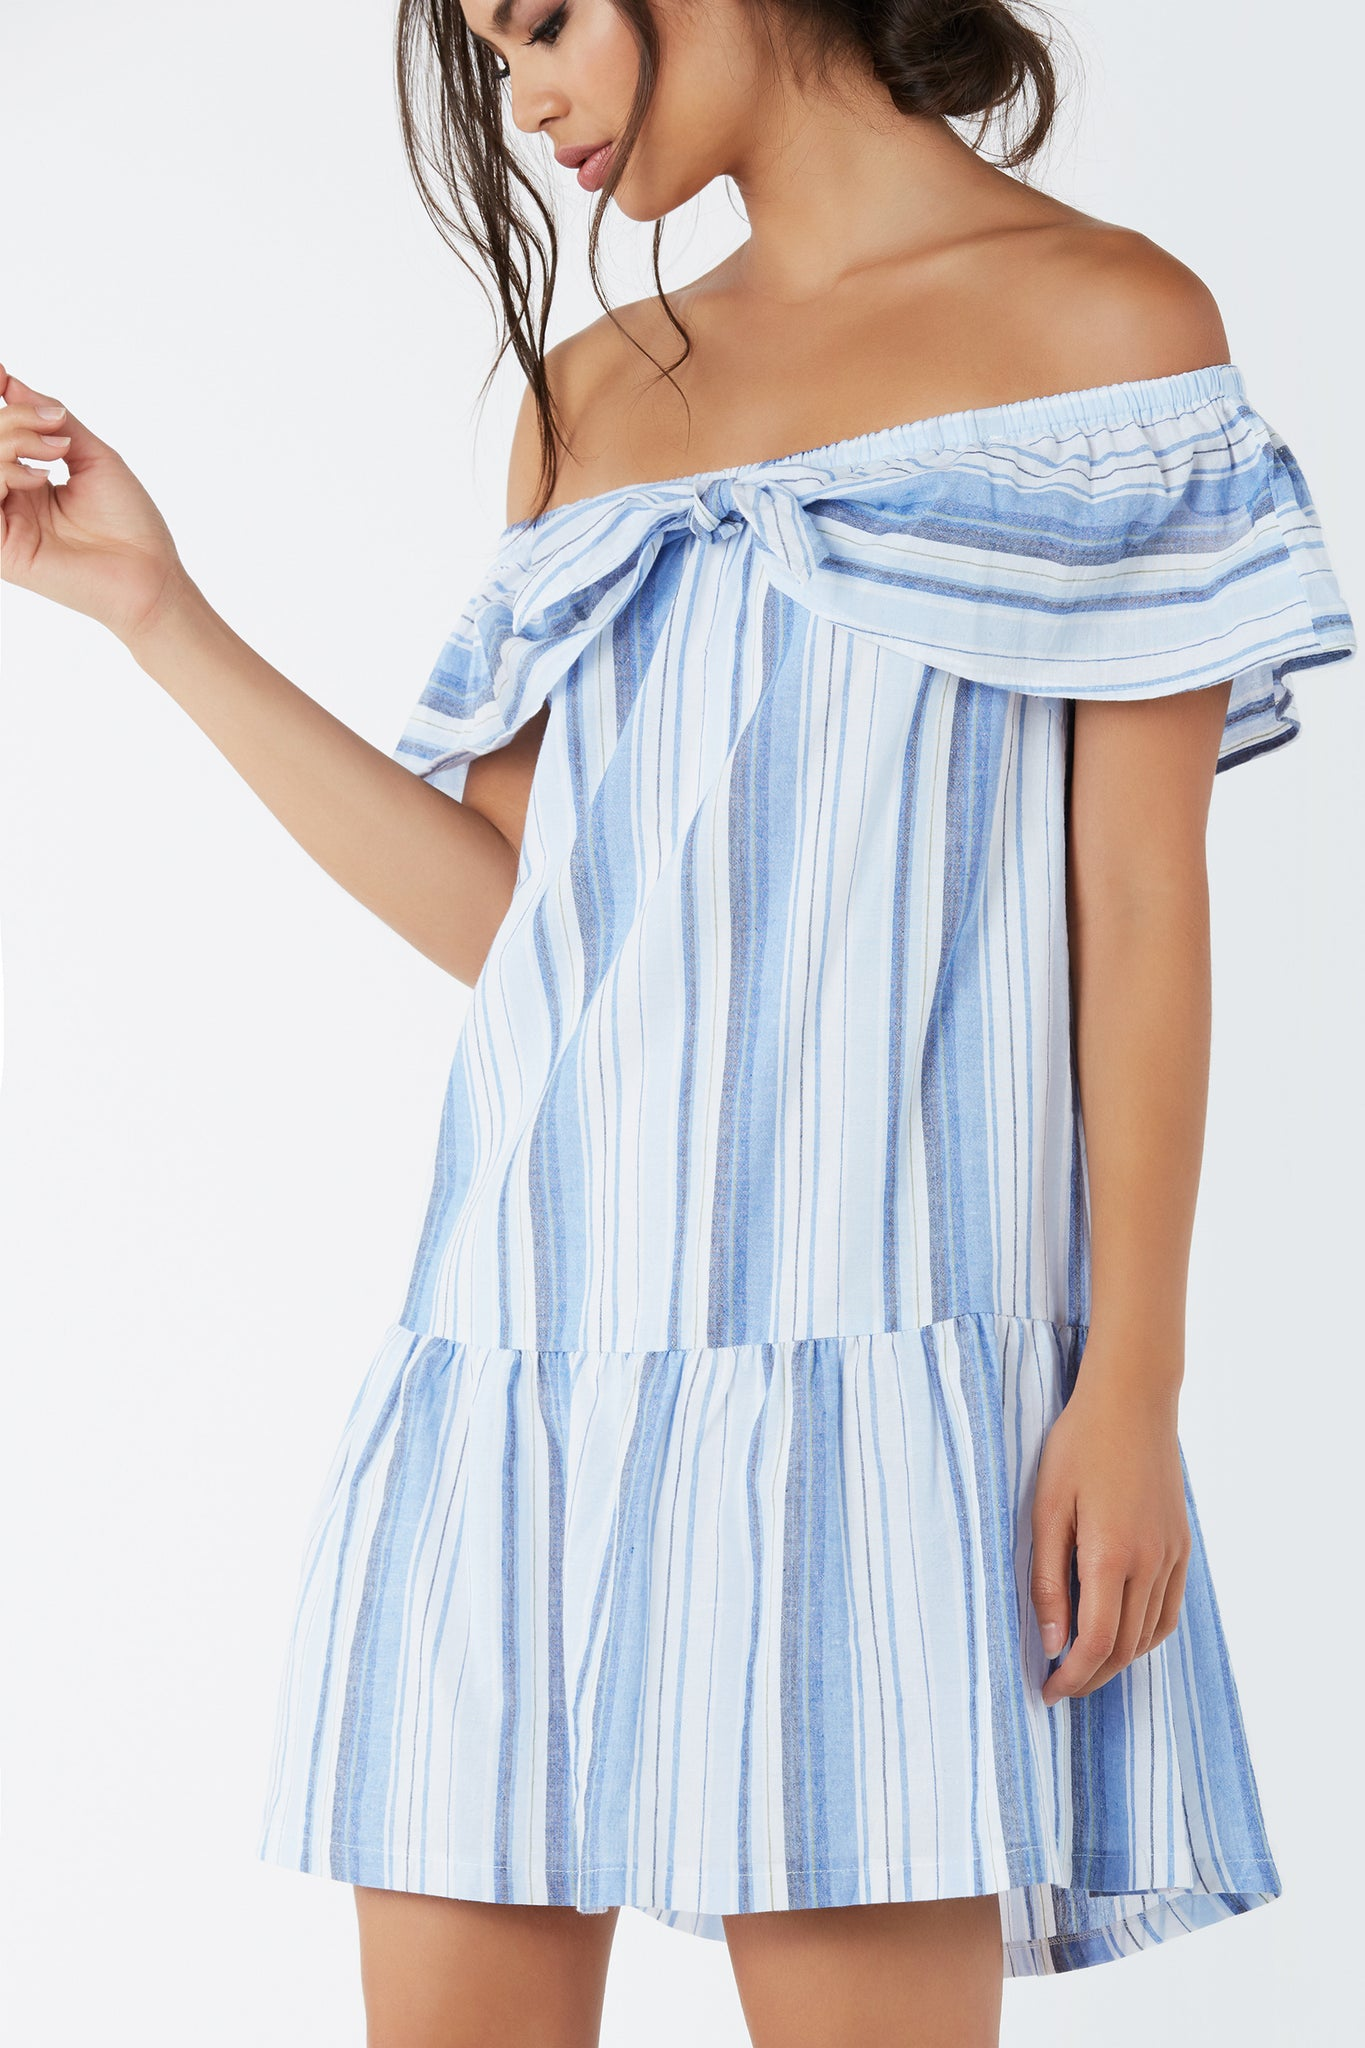 Flirty off shoulder dress with ruffle tier design that ties at center. Fully lined with stripe print throughout.